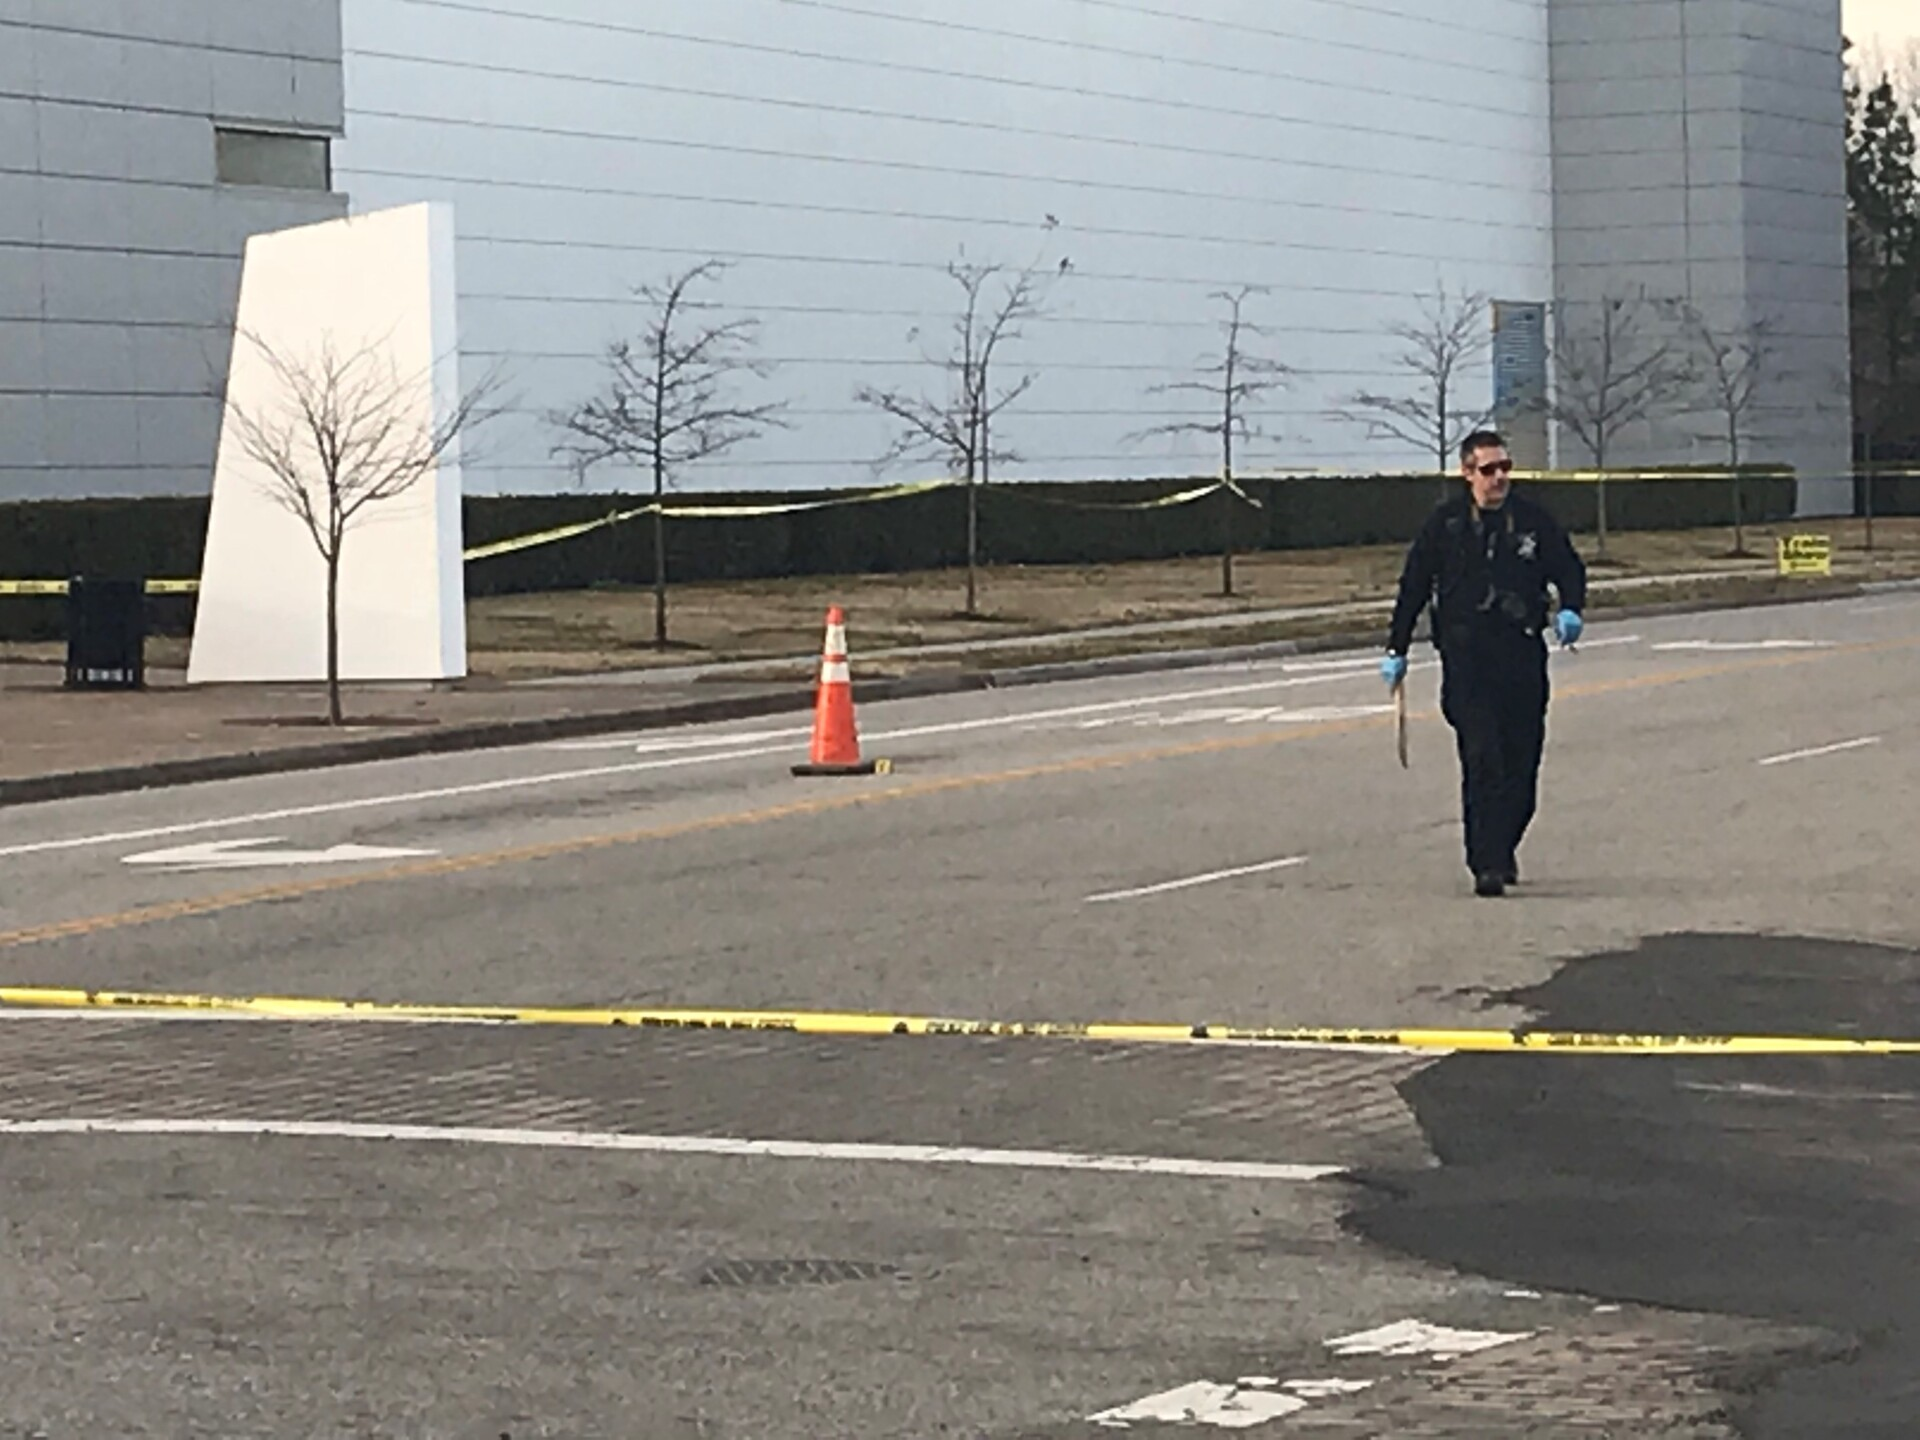 Photos: Police investigating after man found shot near Virginia Beach Convention Center